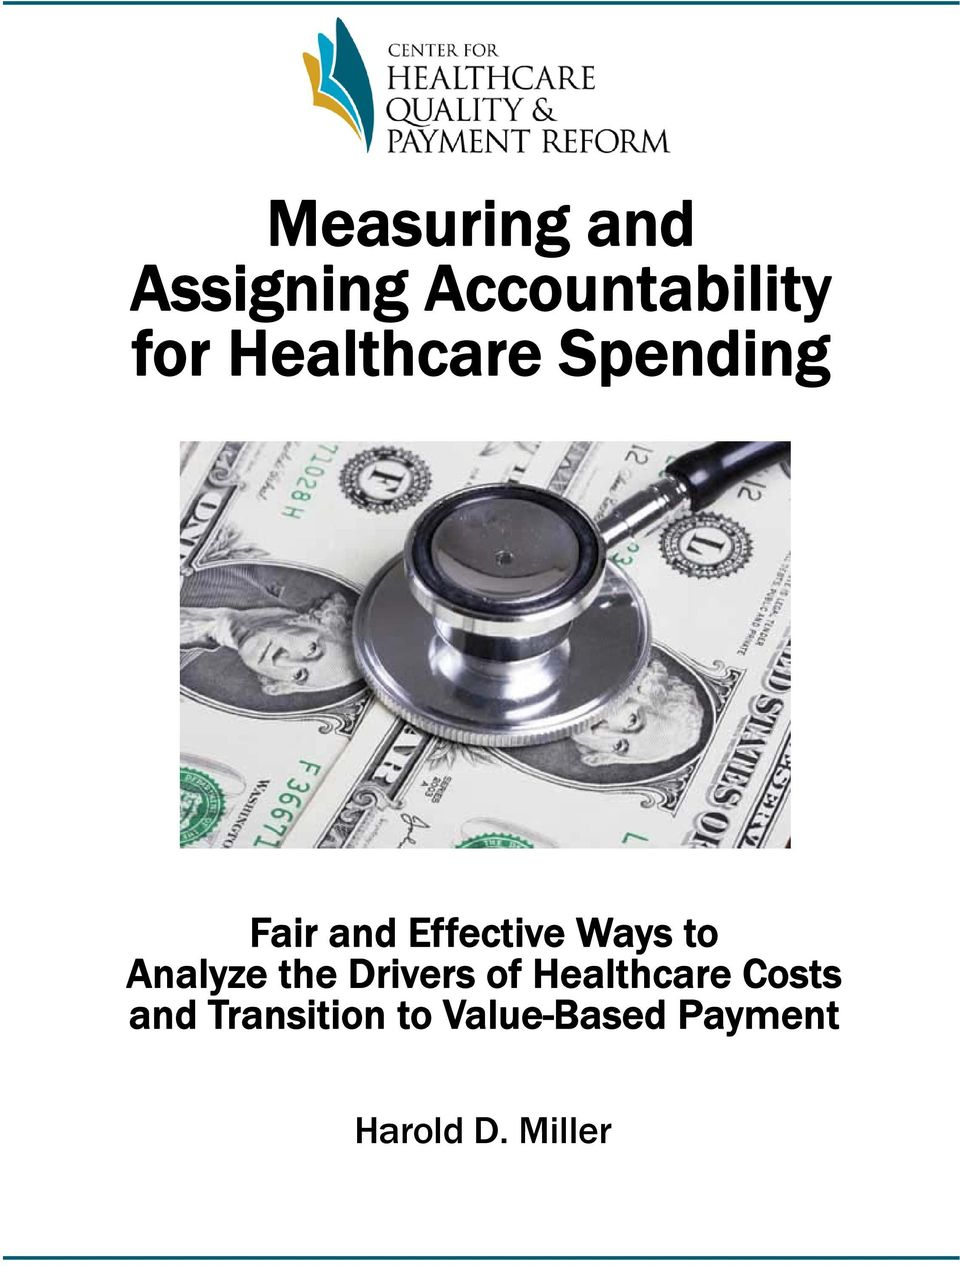 to Analyze the Drivers of Healthcare Costs